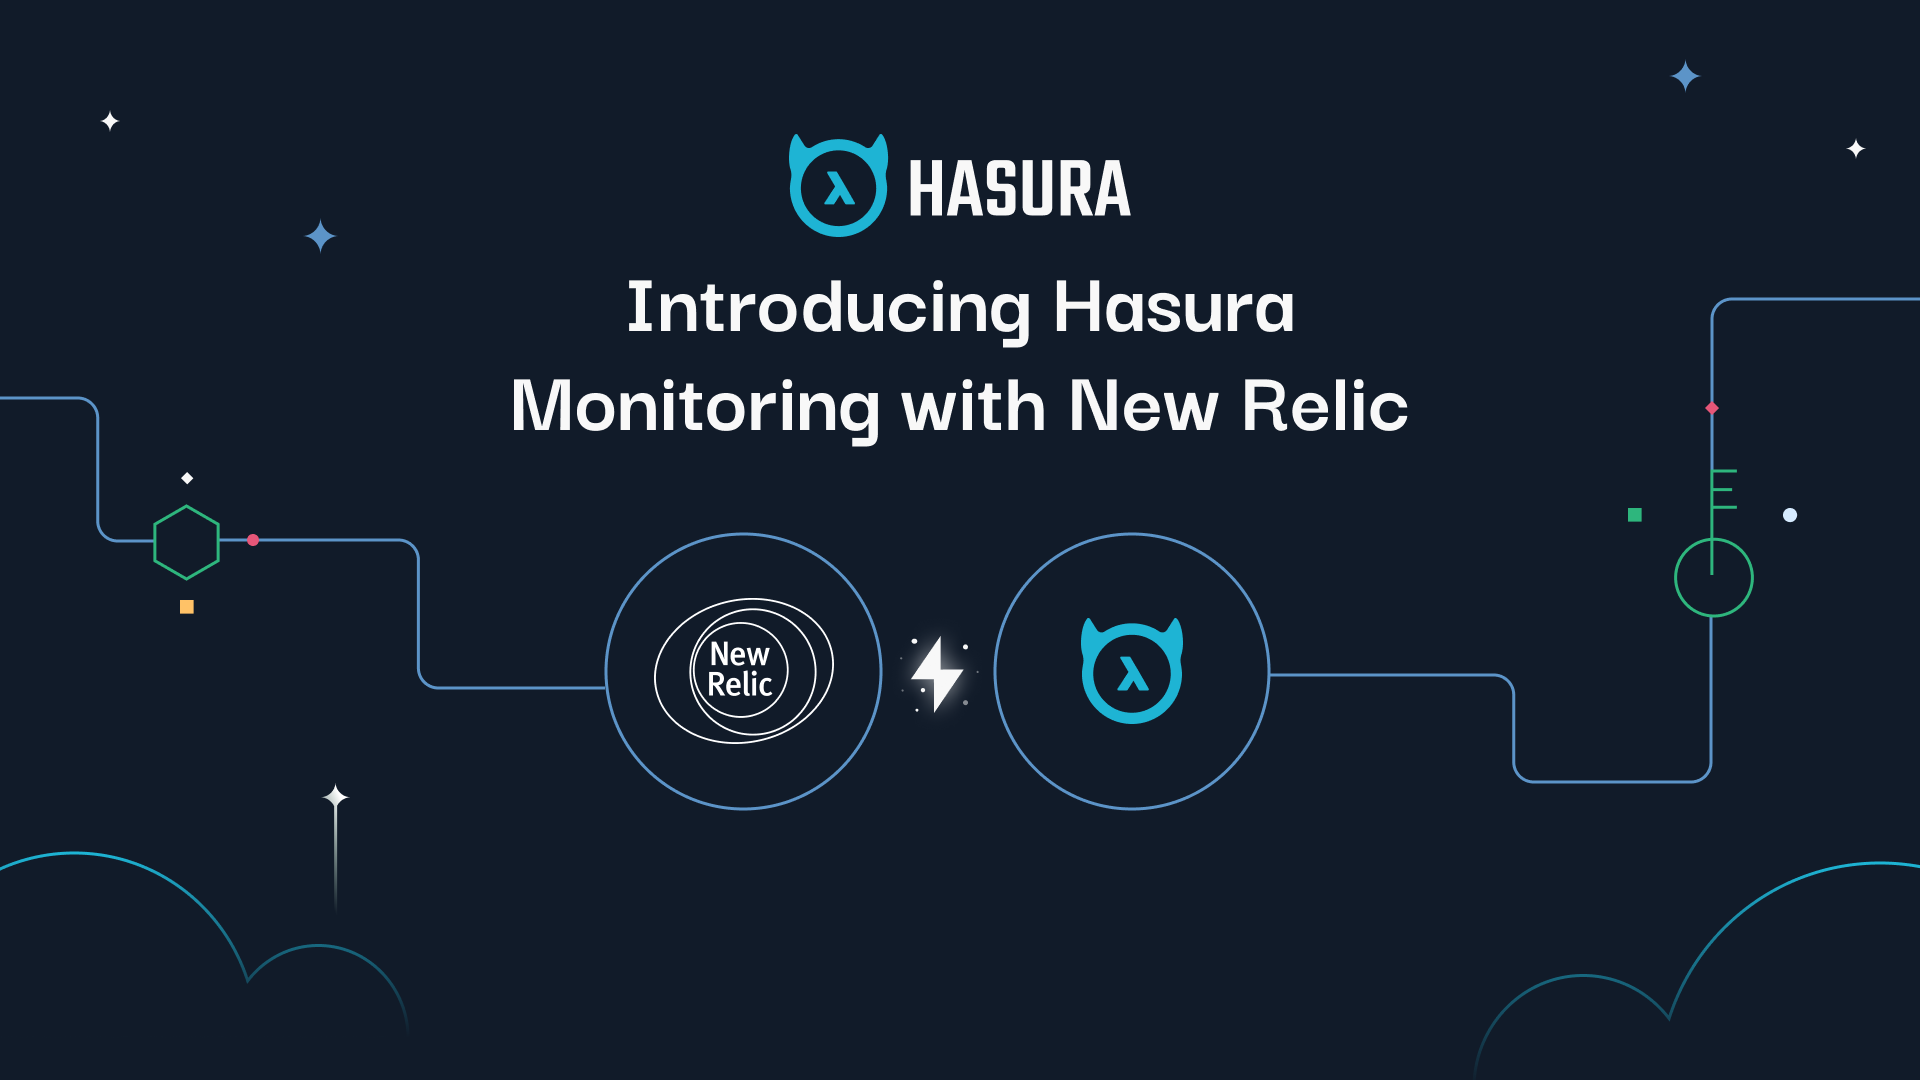 Introducing Hasura Monitoring with New Relic